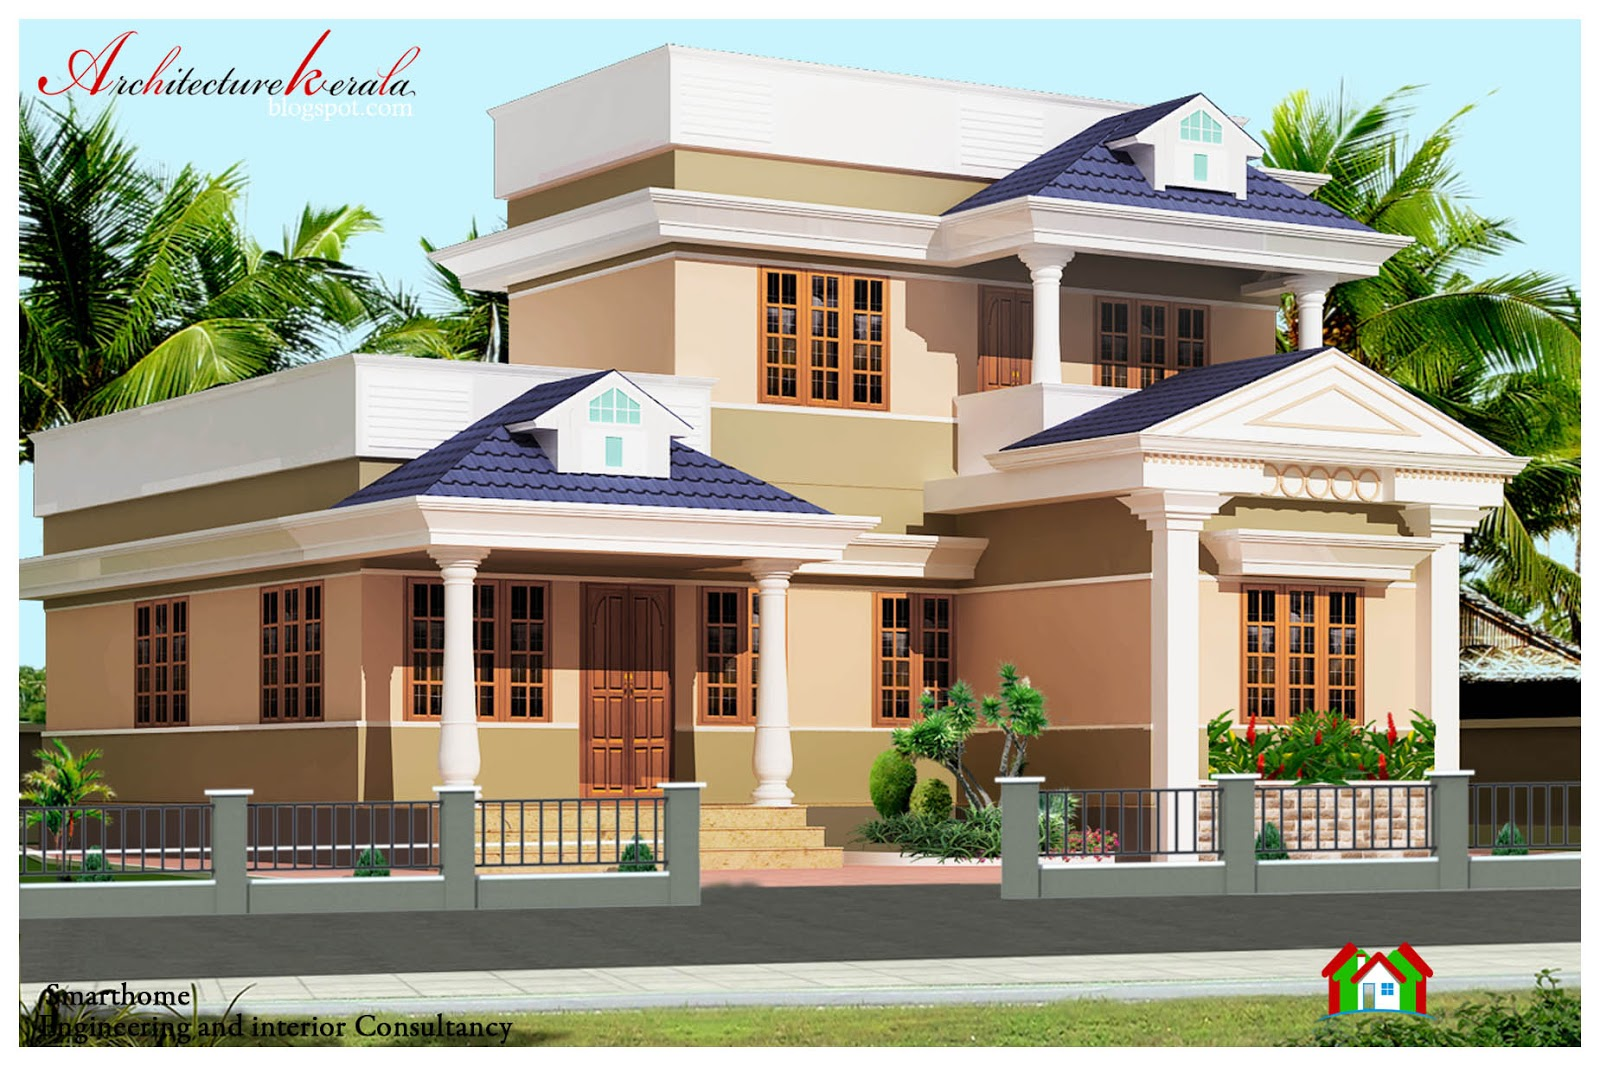 Architecture kerala 1000 sq ft kerala style house plan for Kerala model house plans 1000 sq ft